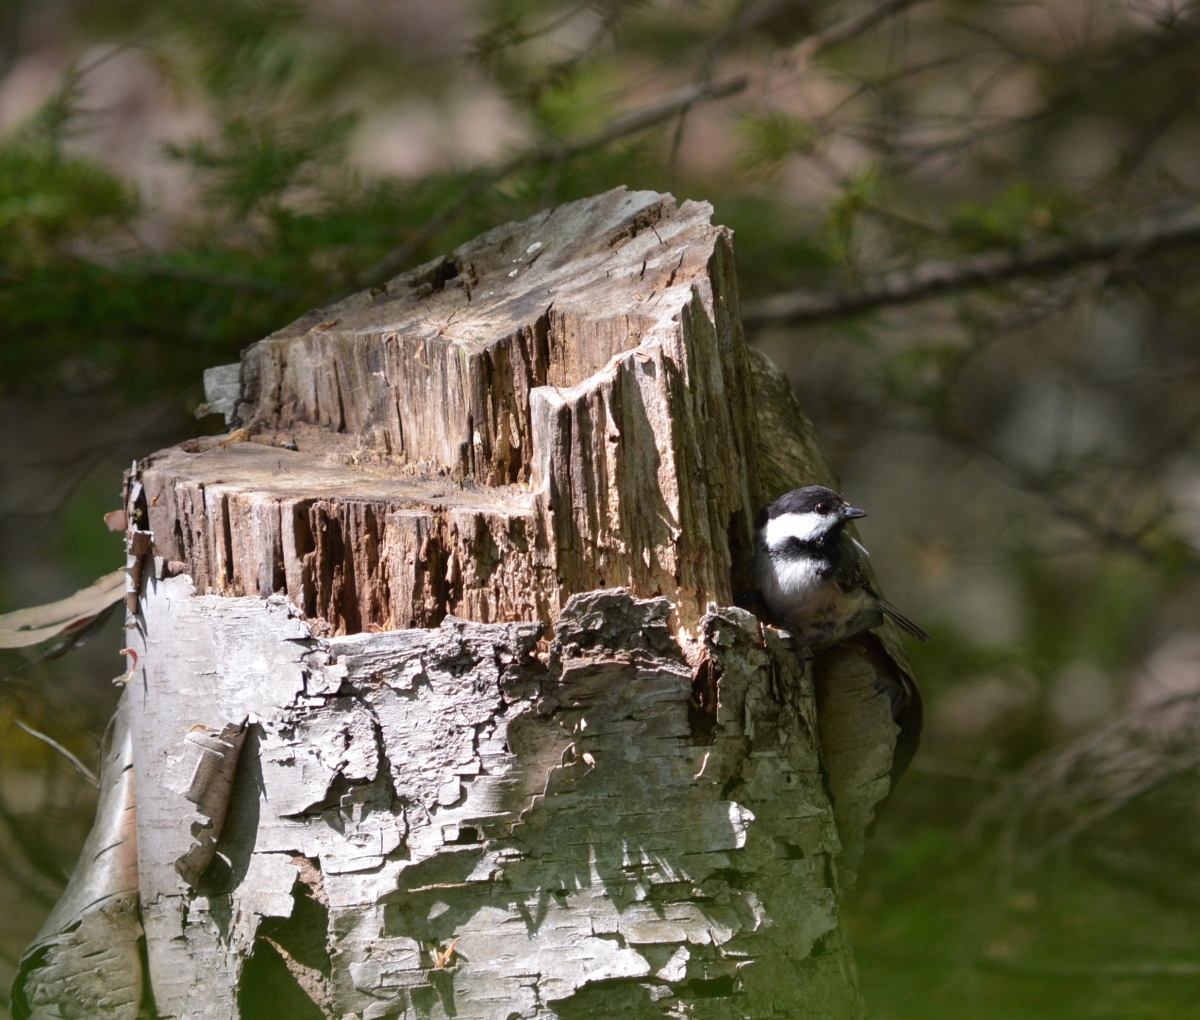 A small bird sits on the side of a tree stump